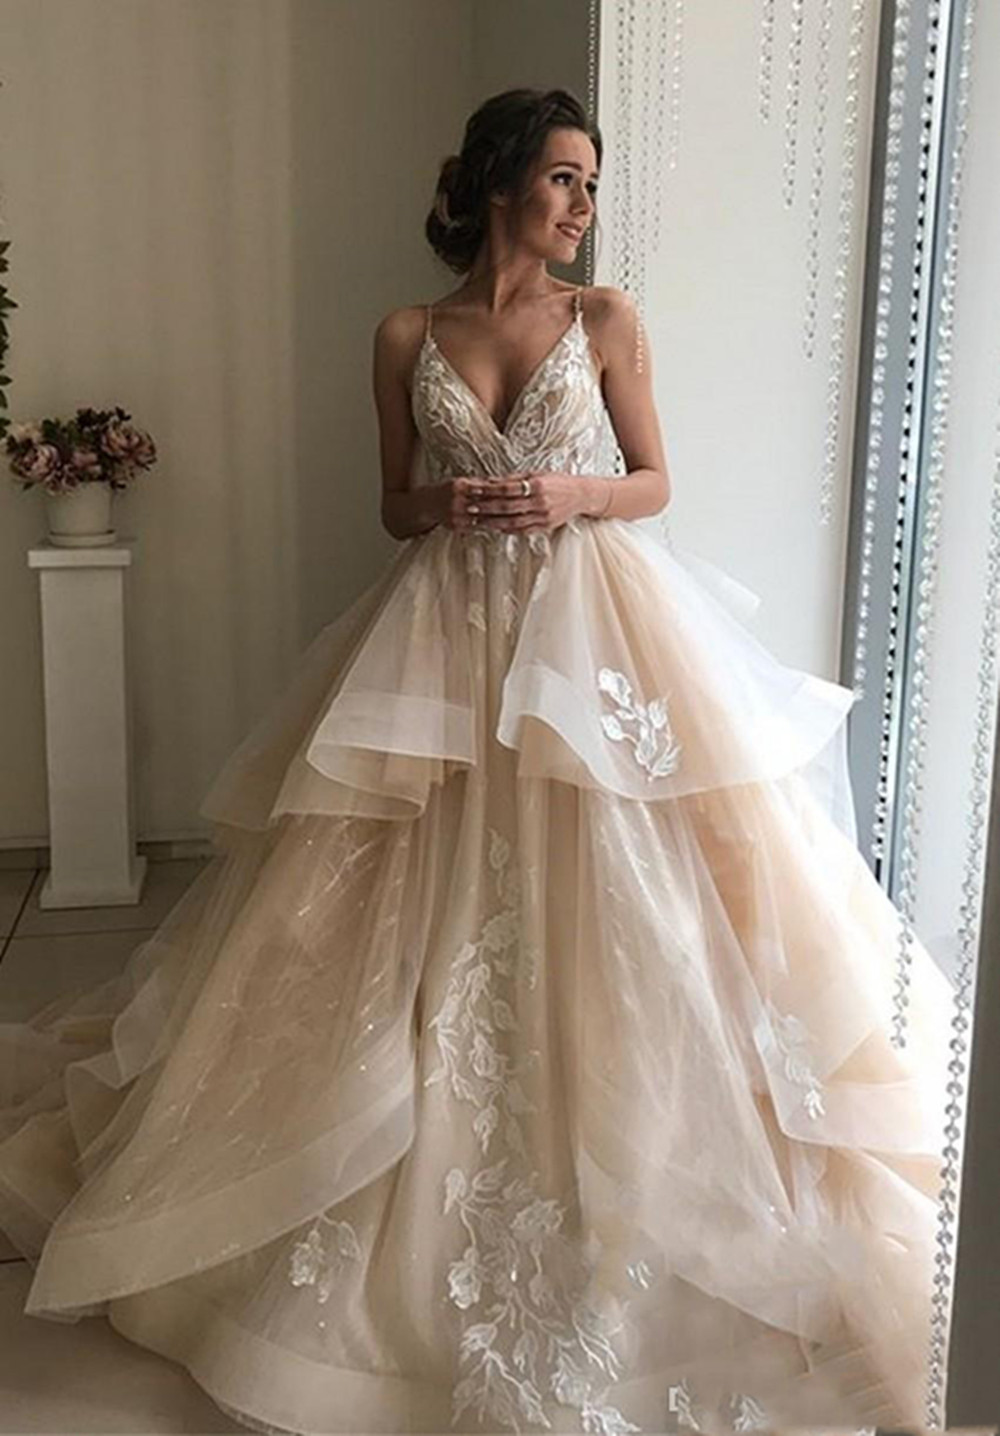 Pretty Champagne Floral Lace <font><b>Wedding</b></font> <font><b>Dresses</b></font> 2020 <font><b>Sexy</b></font> Backless Ruffles Puffy Bridal Gowns Beach <font><b>Wedding</b></font> Gowns Vestido De Noiva image